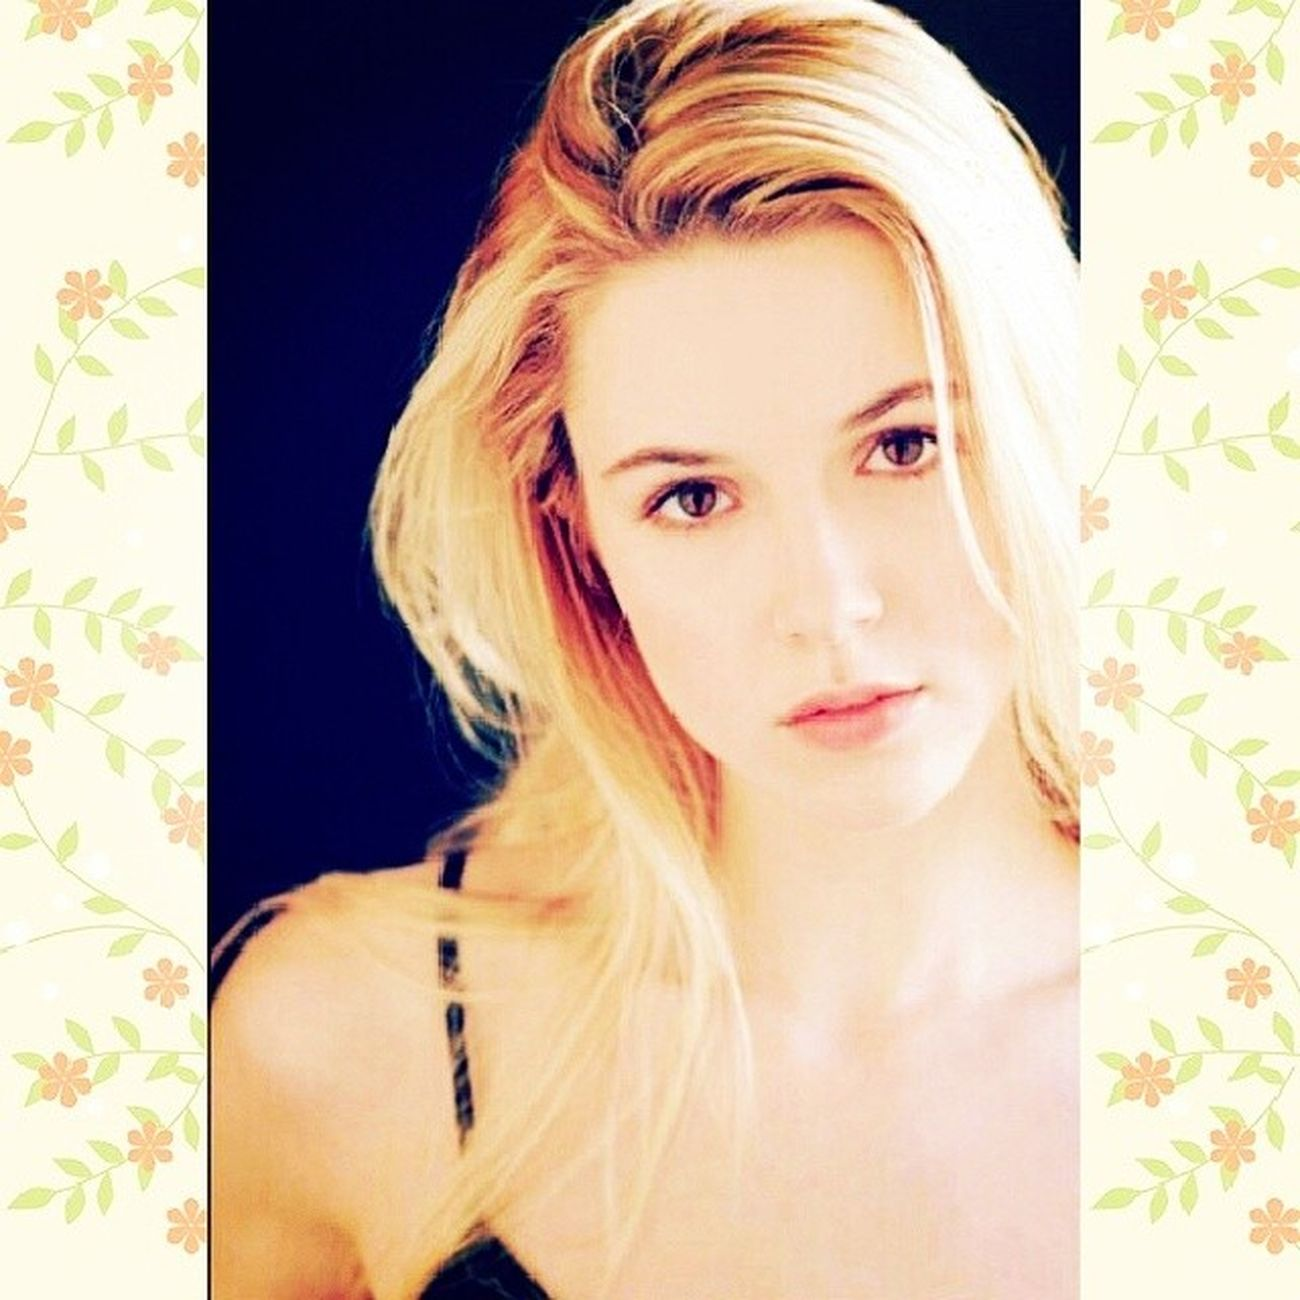 Jo Harvelle JoHarvelle Alona Tal AlonaTal Supernatural flowers lovely